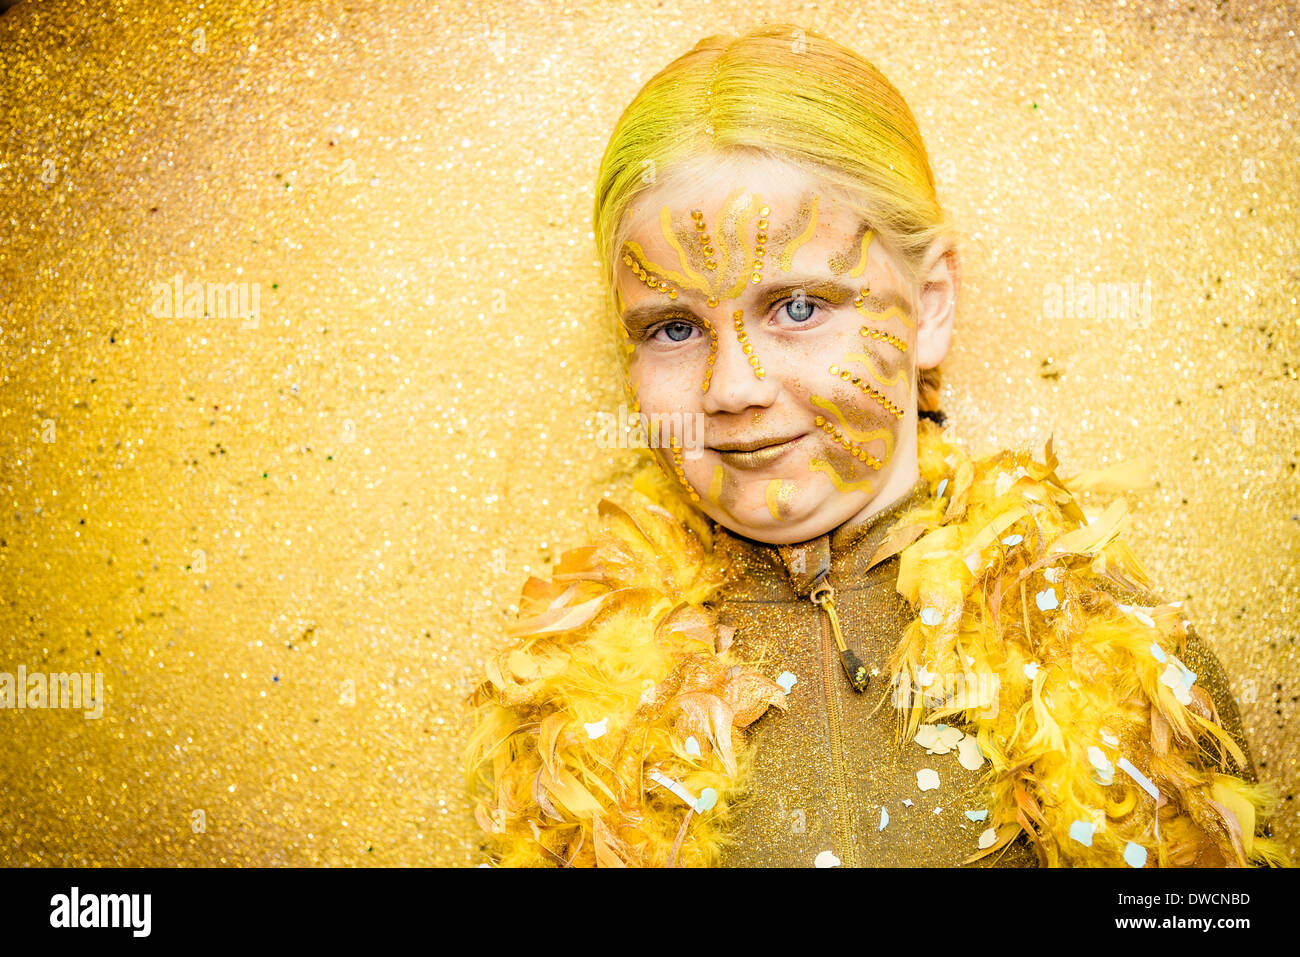 Sitges, Spain. March 4th, 2014: A girl in an fantasy costume dances during the the children carnival parade in Sitges. - Stock Image